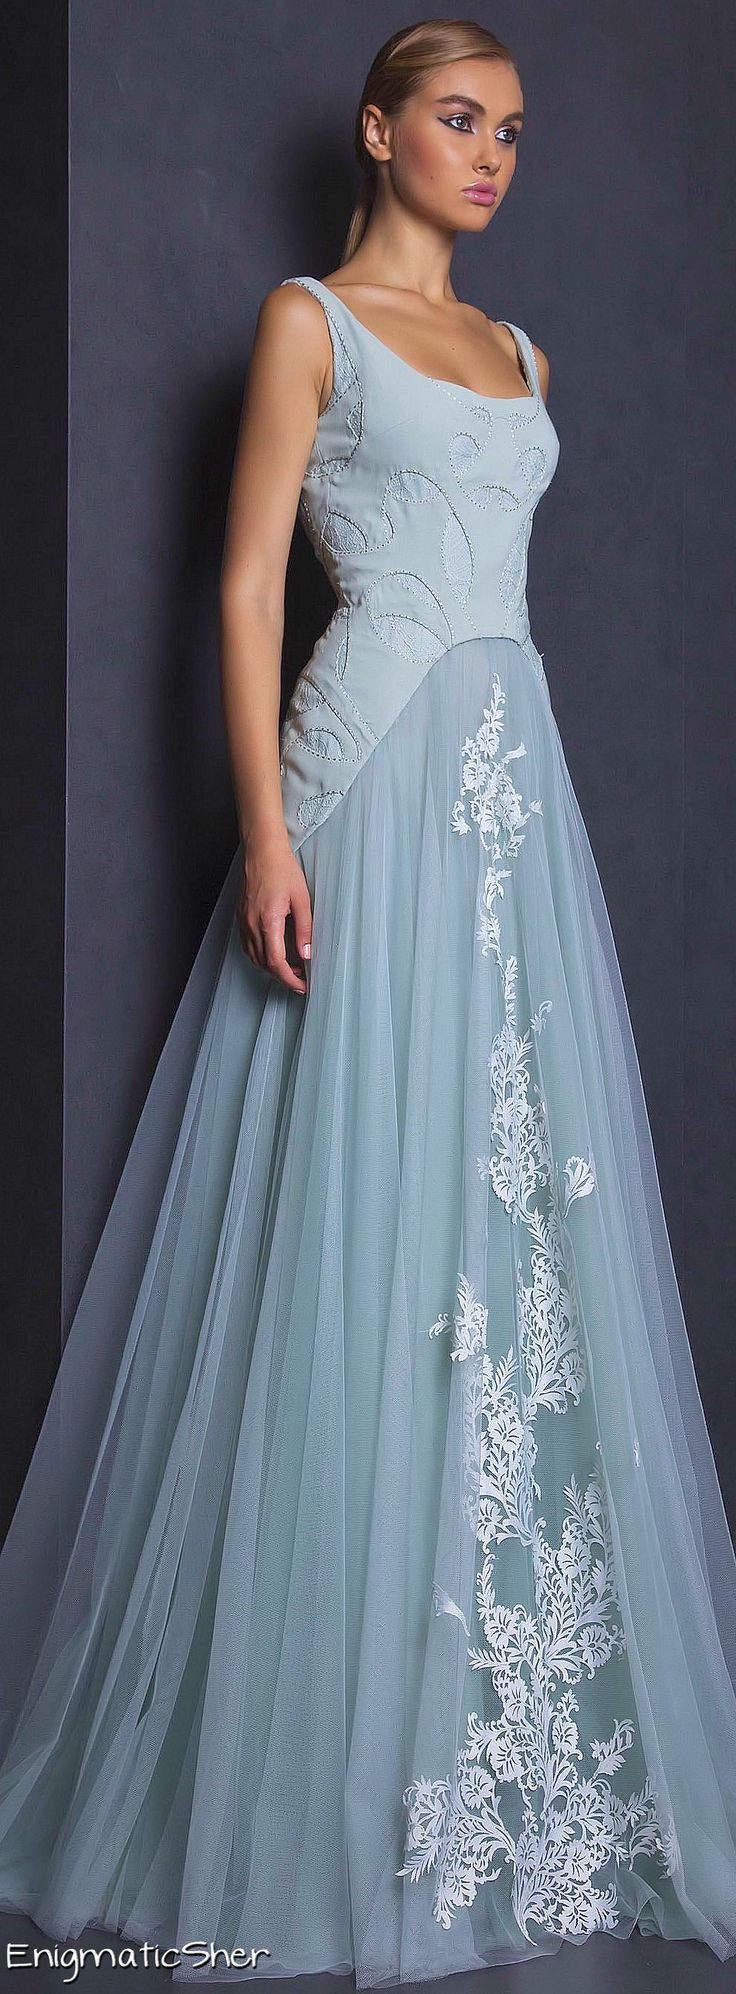 156 best Formal Colors: Blue images on Pinterest | Crystal jewelry ...